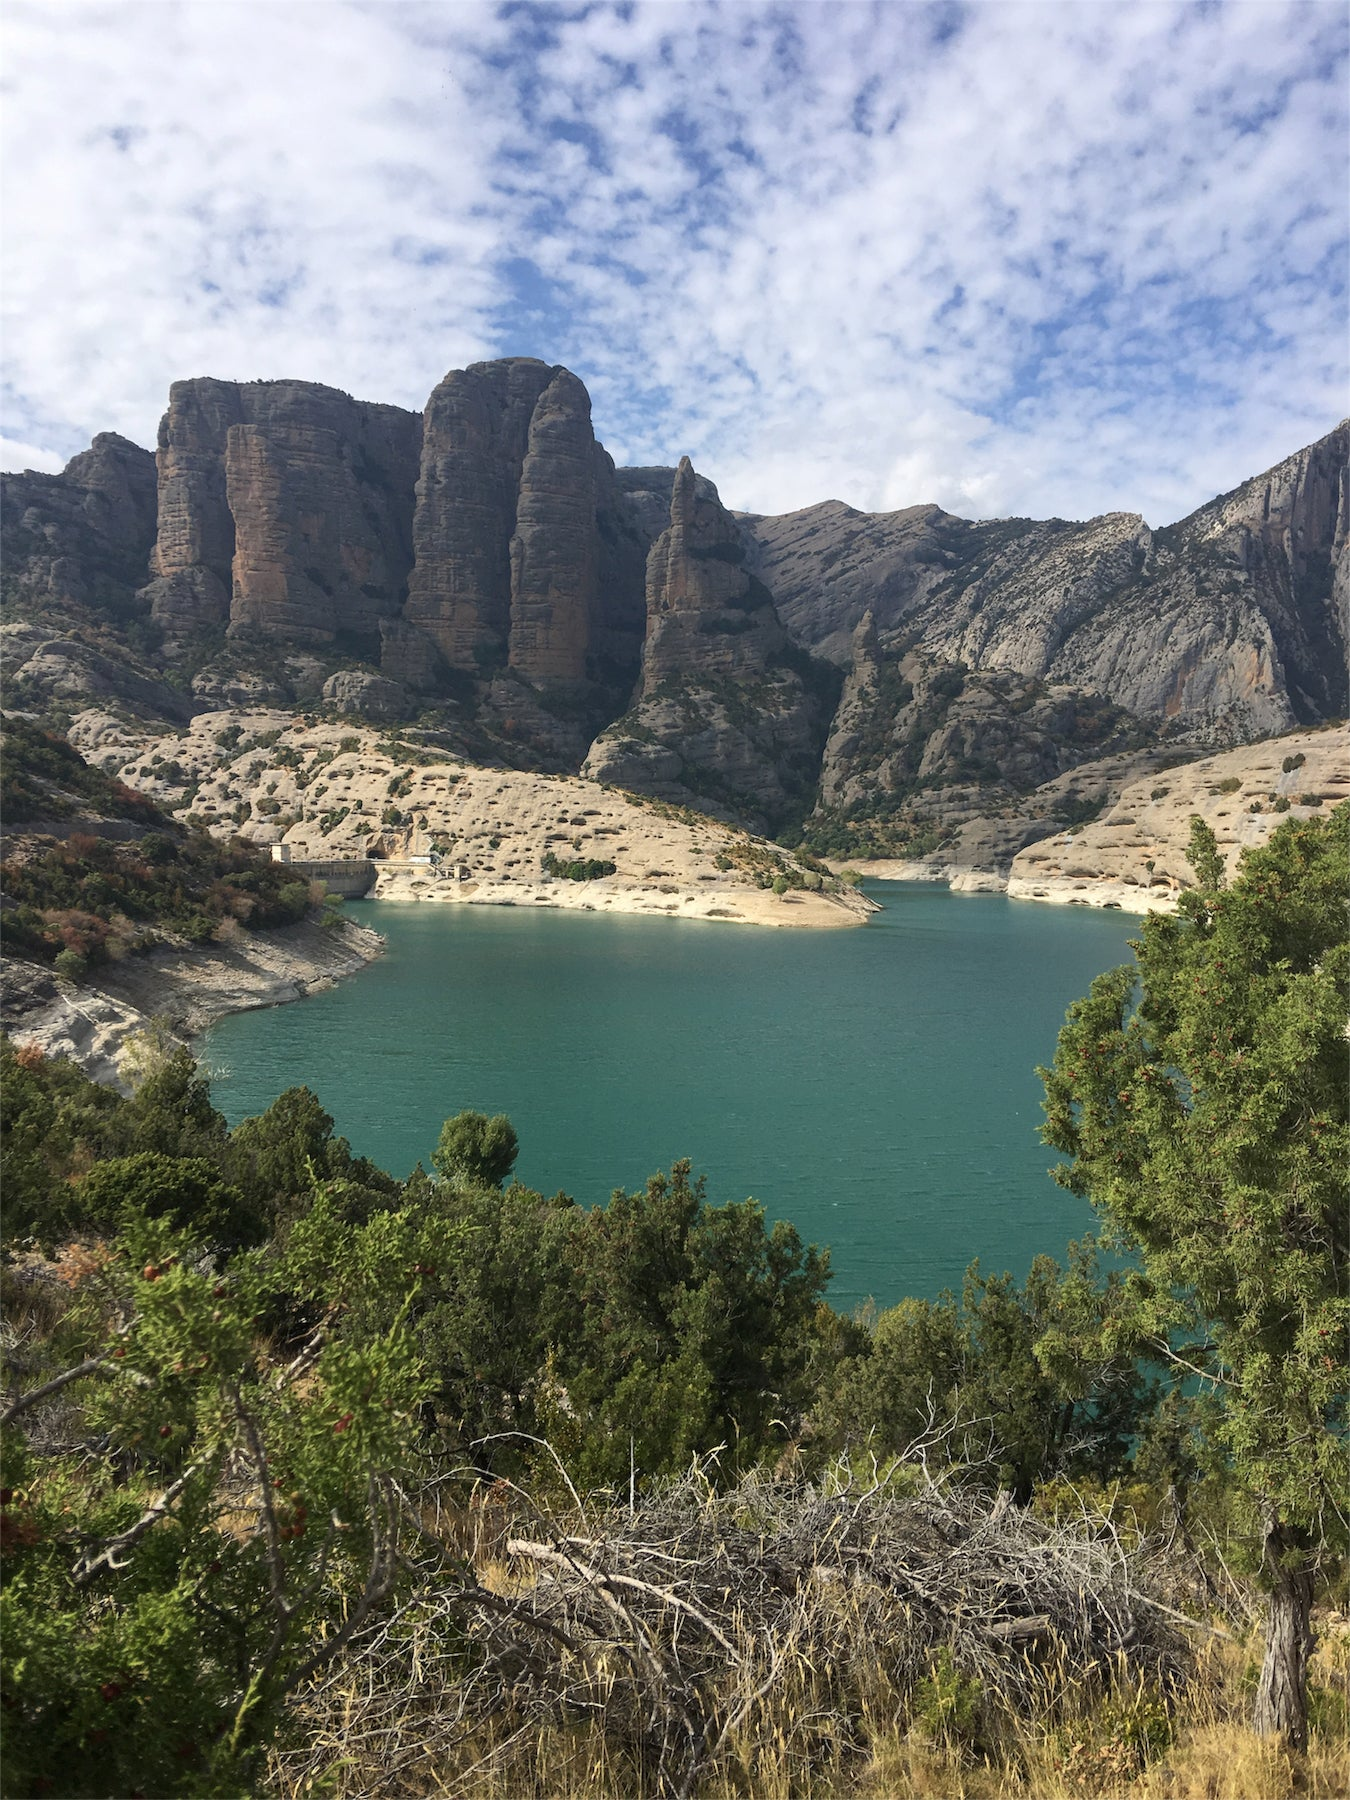 Embalse de Vadiello, Huesca